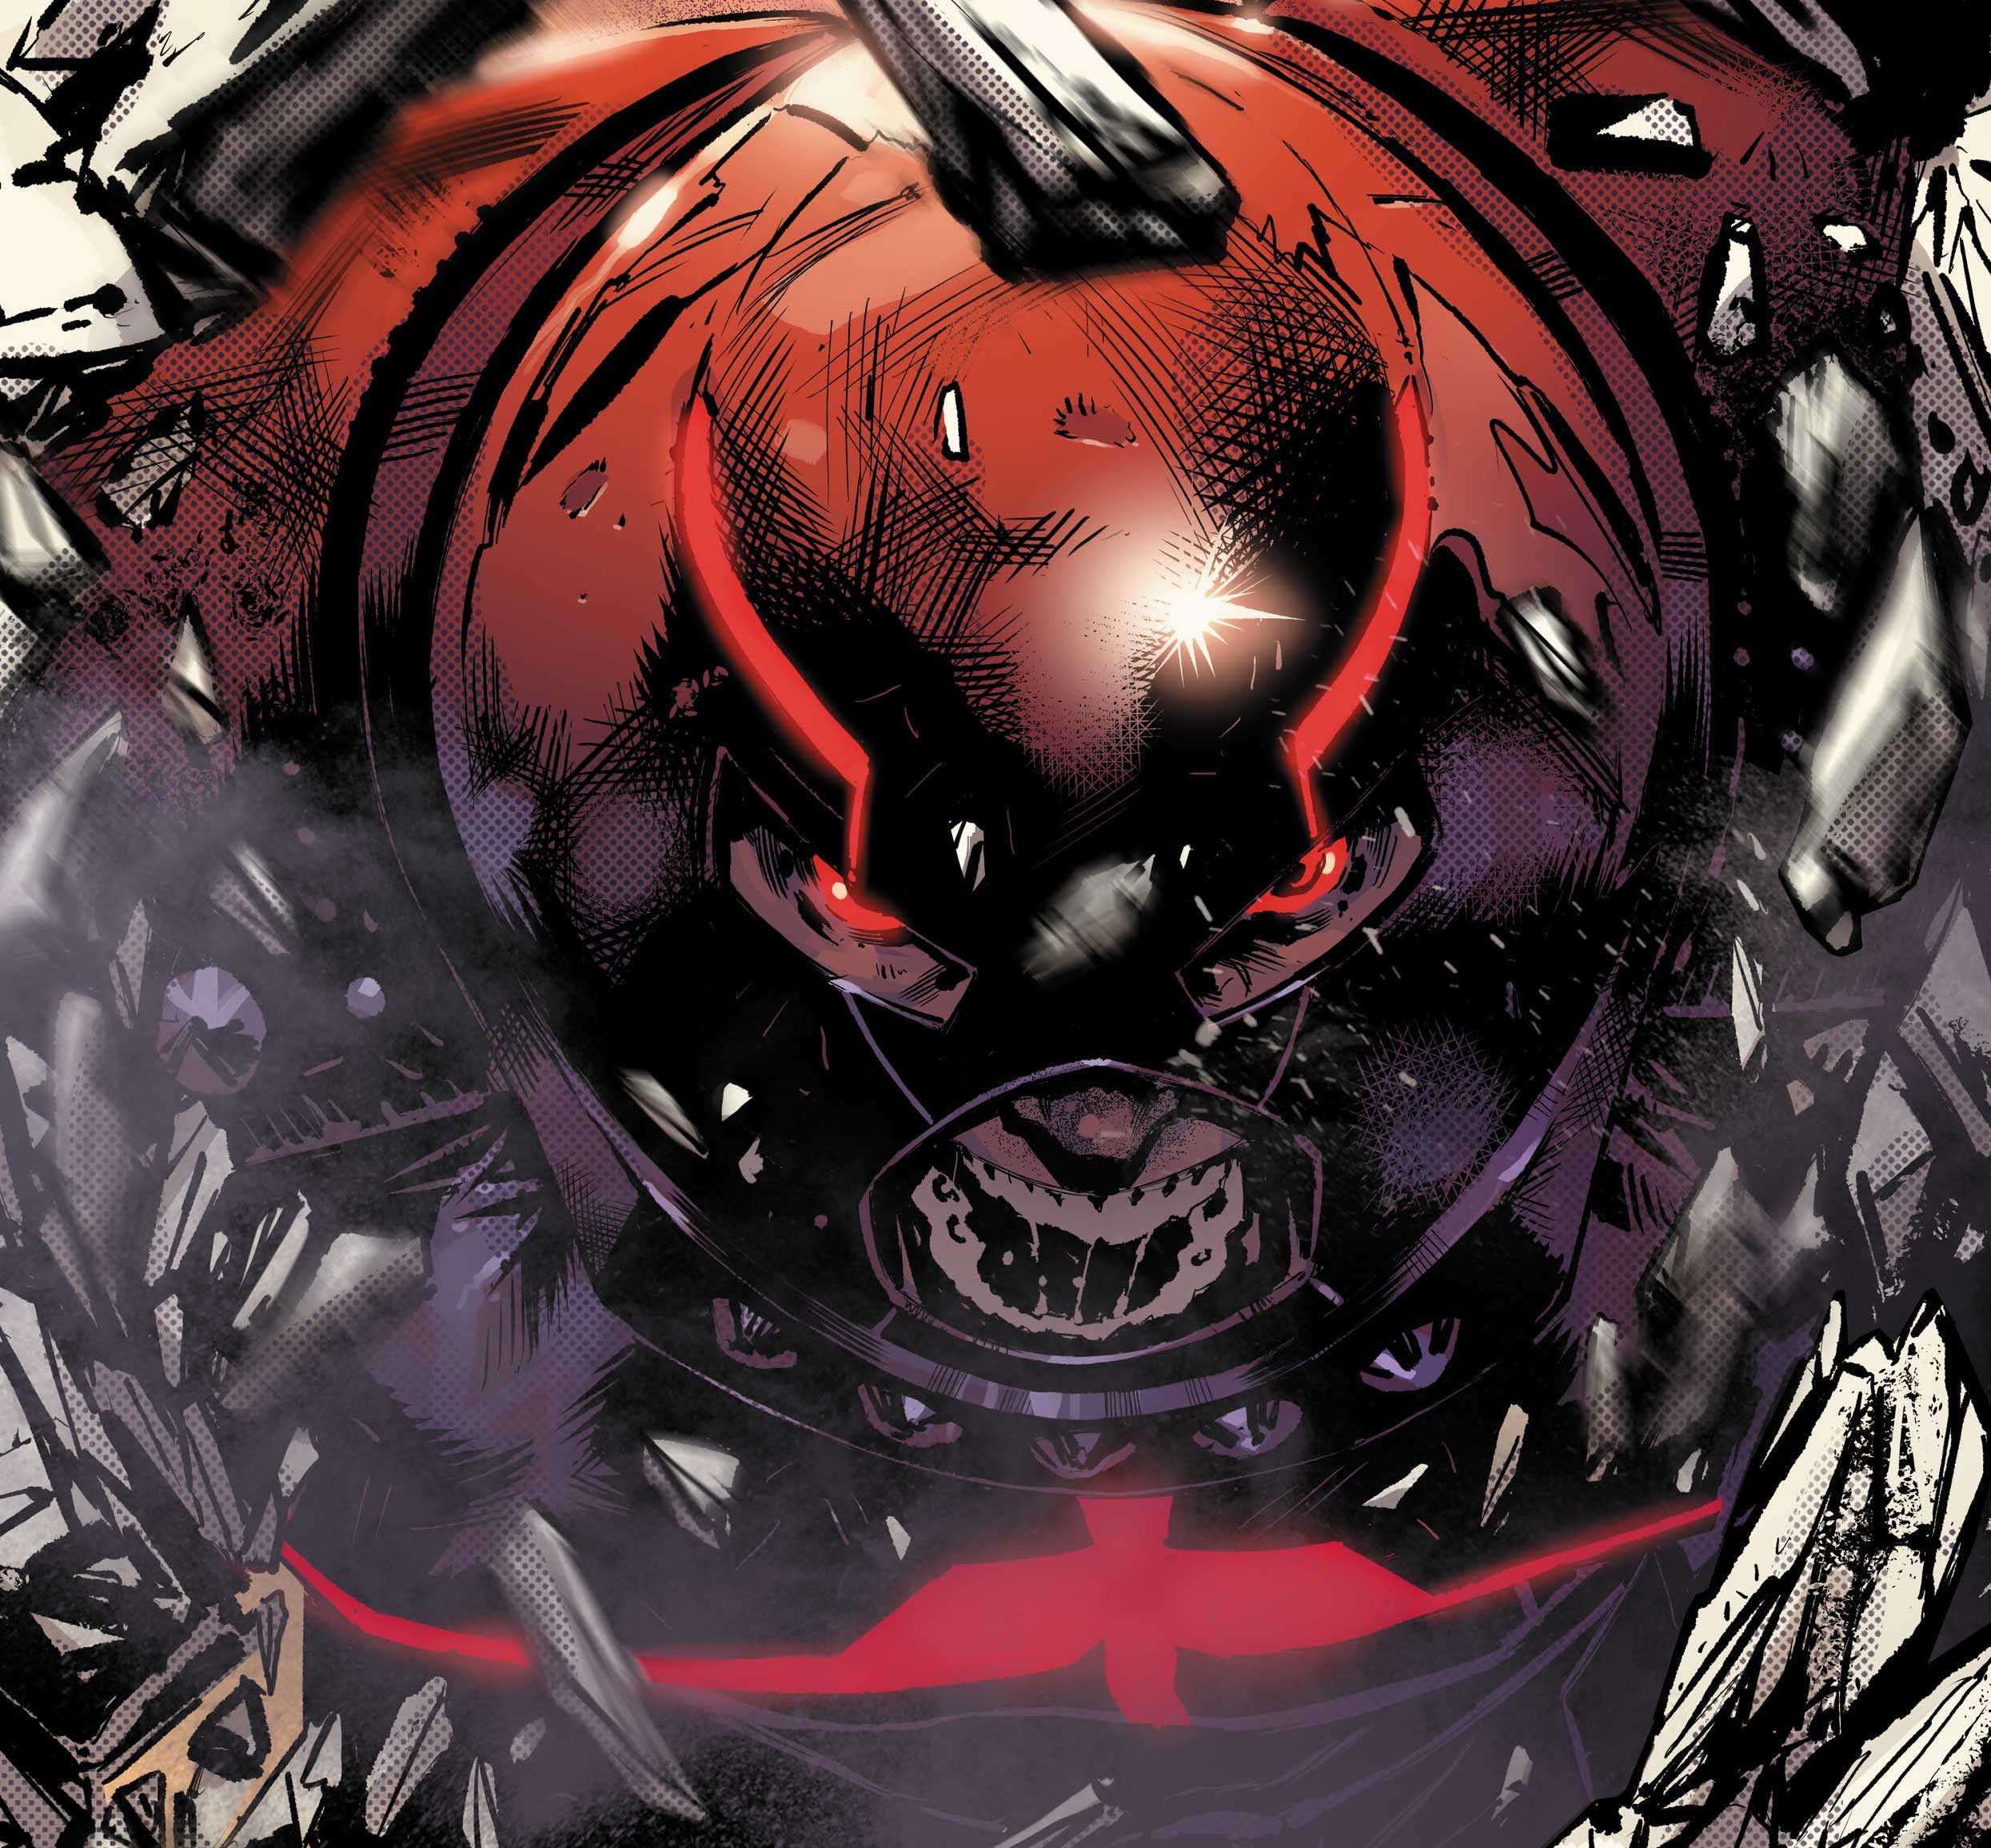 X-Men First Look: 'Juggernaut' #1 coming from X-juggernaut writer Fabian Nicieza and Ron Garney